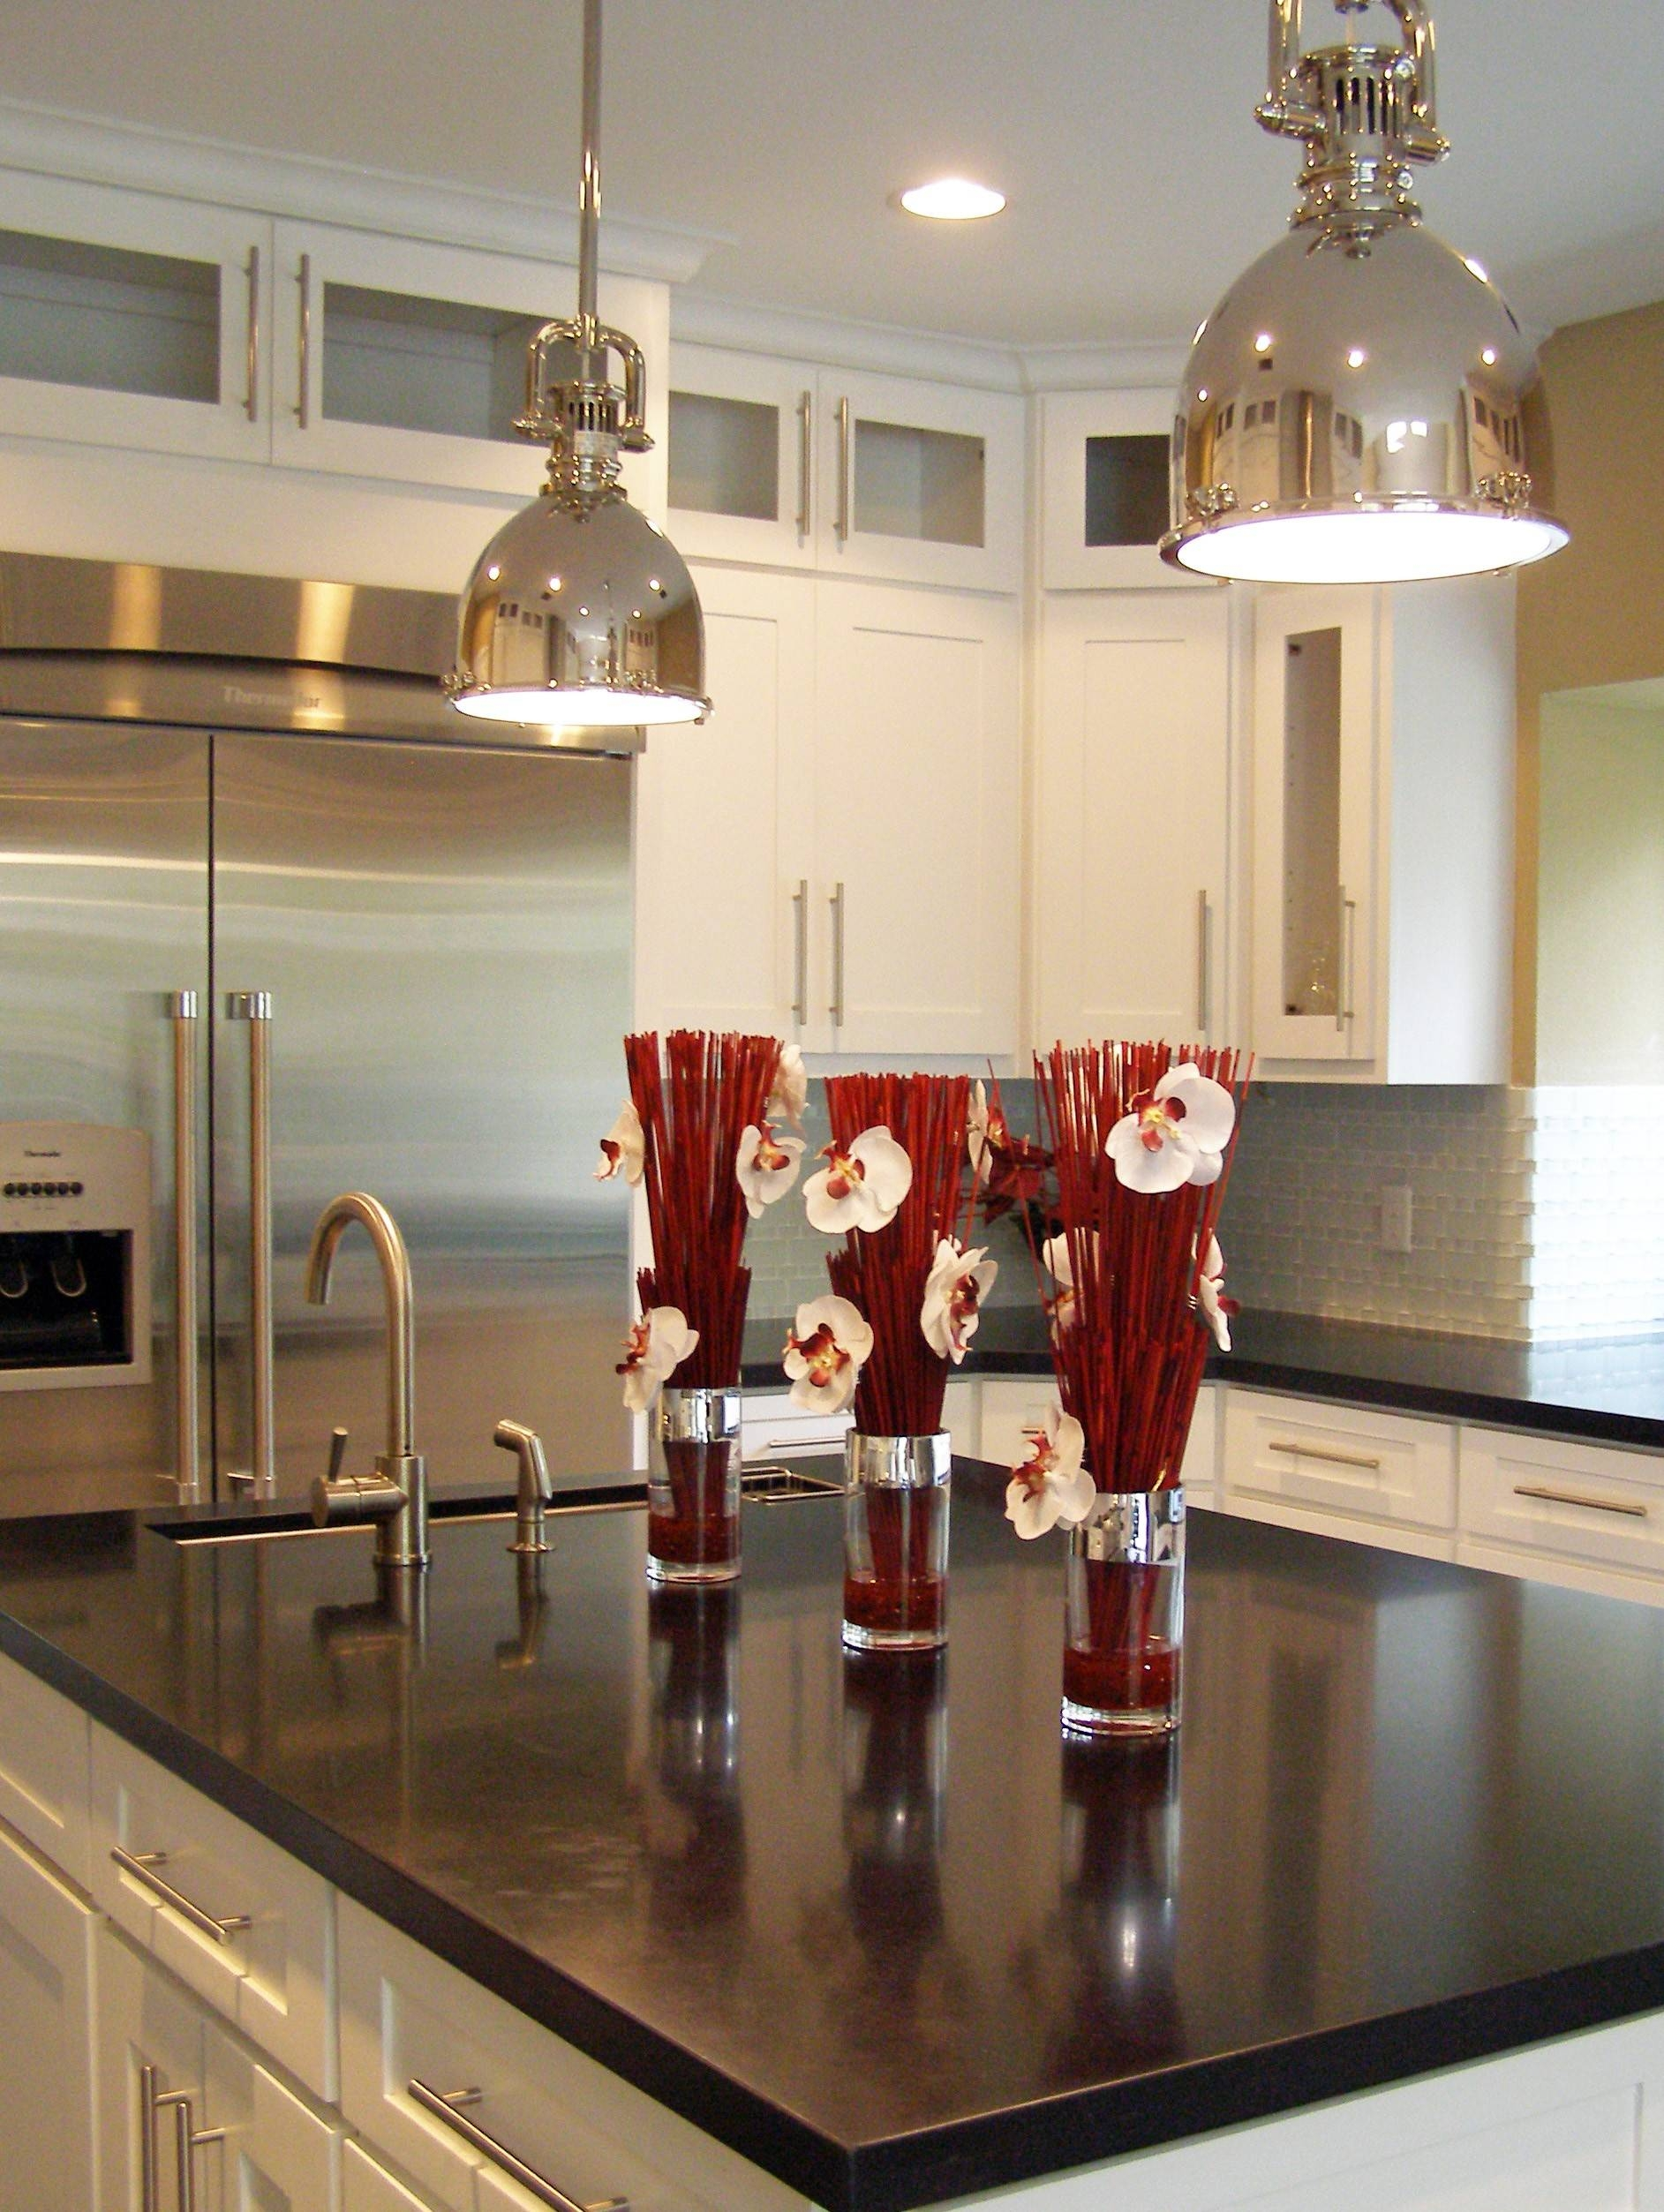 Furniture Appealing Pendant Lights For Kitchen Islands Wooden intended for Stainless Steel Kitchen Pendant Lights (Image 1 of 15)